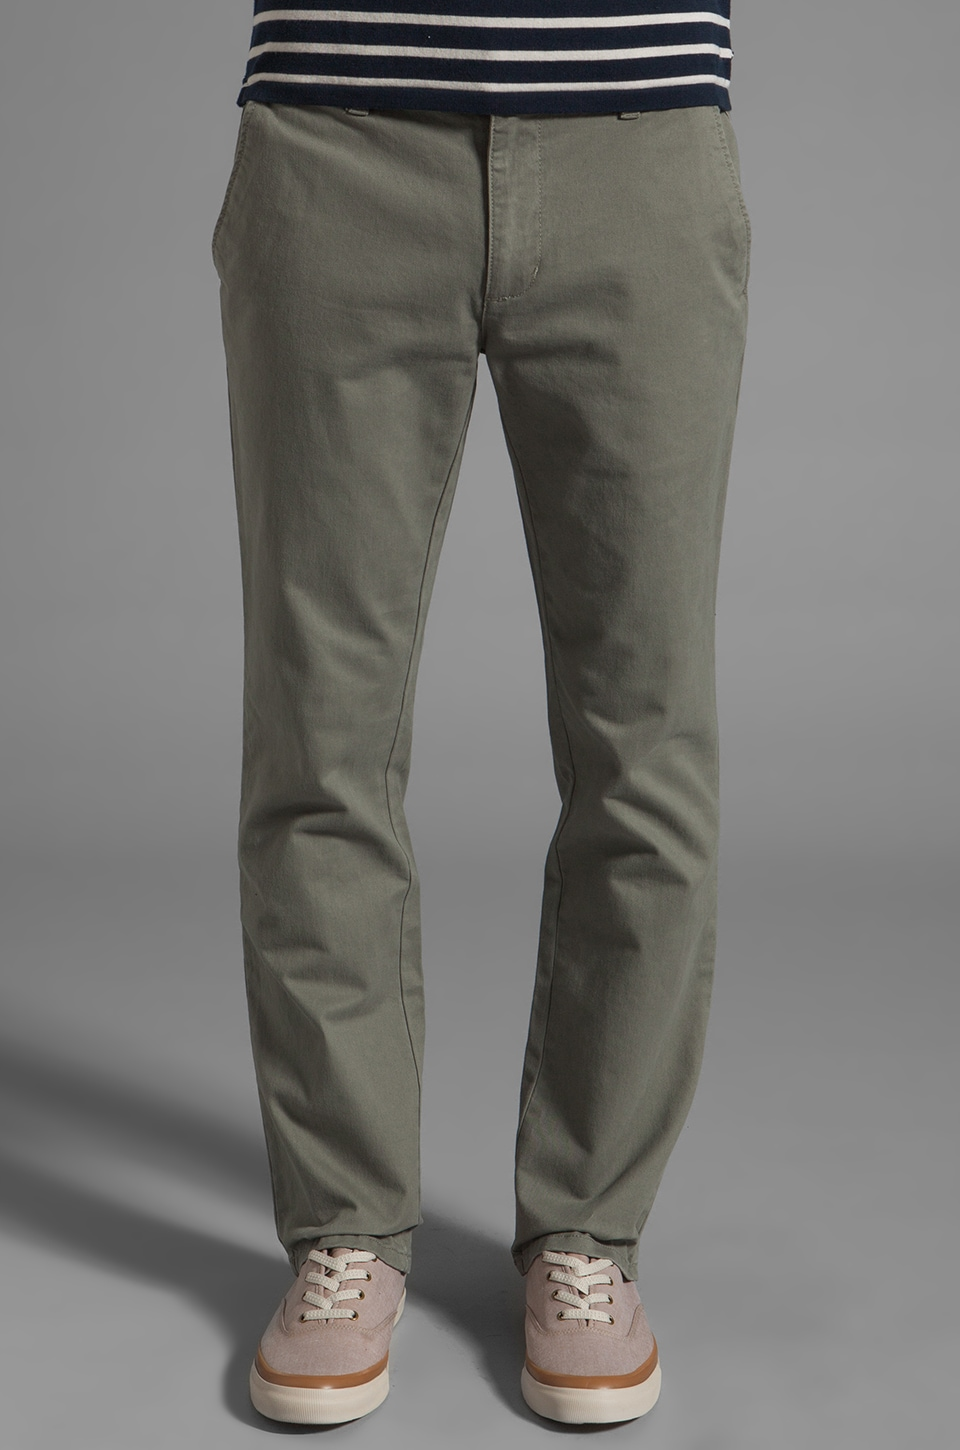 RVCA All Time Chino Pant in Olive Mute